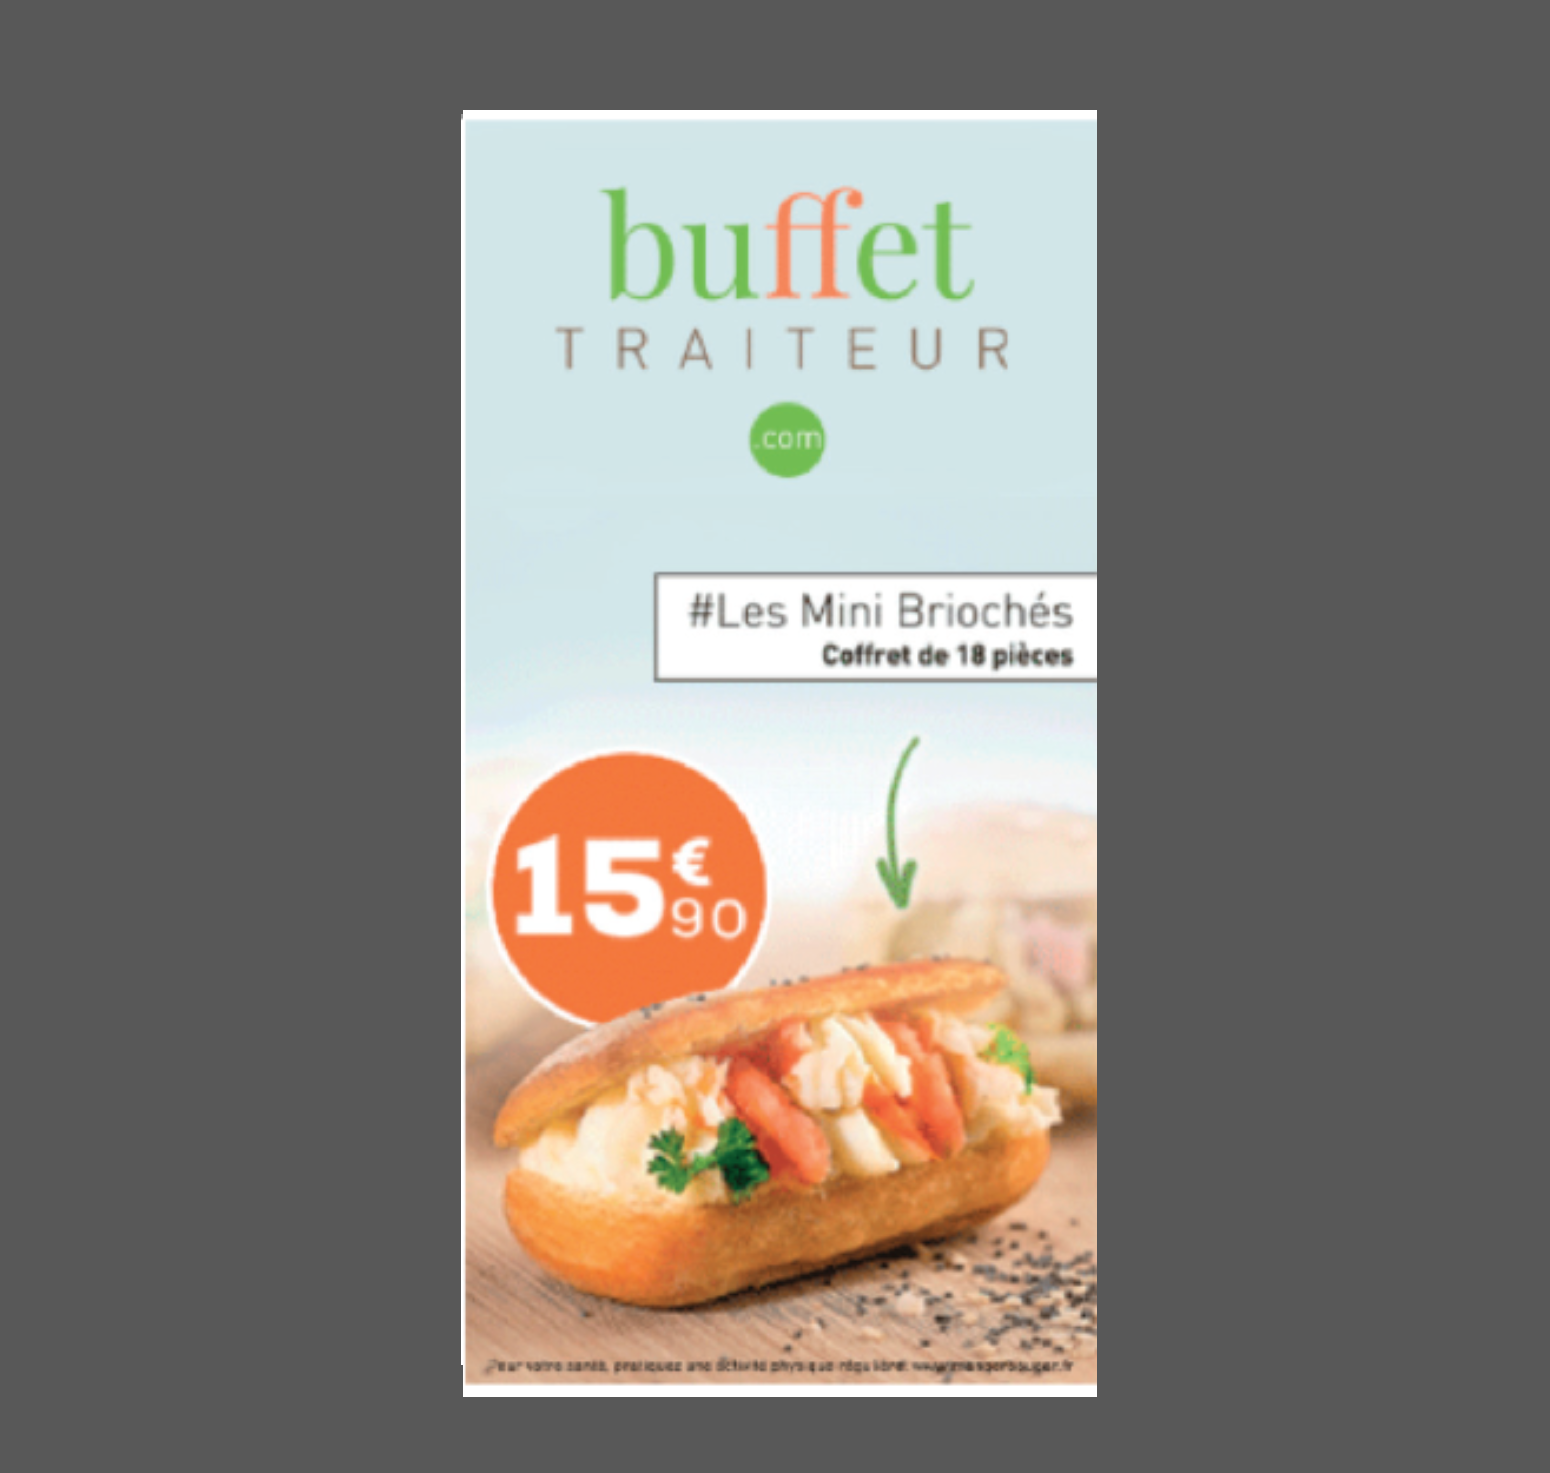 Campagne display - buffet traiteur